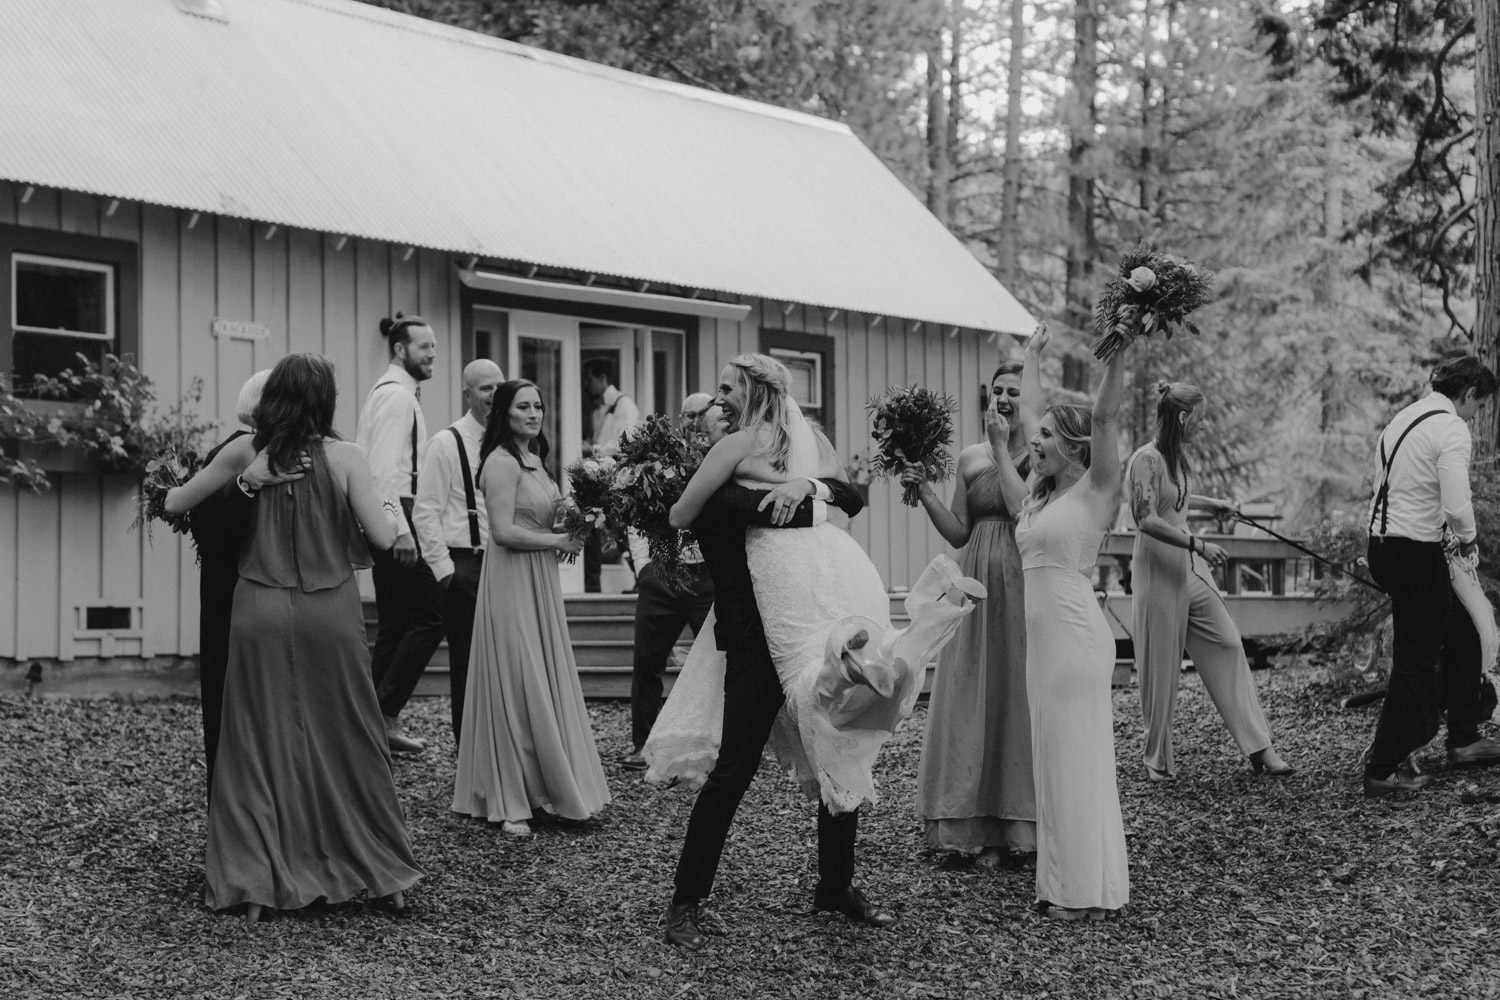 Twenty Mile House Wedding Photographer, bridal party celebrating with brie and groom